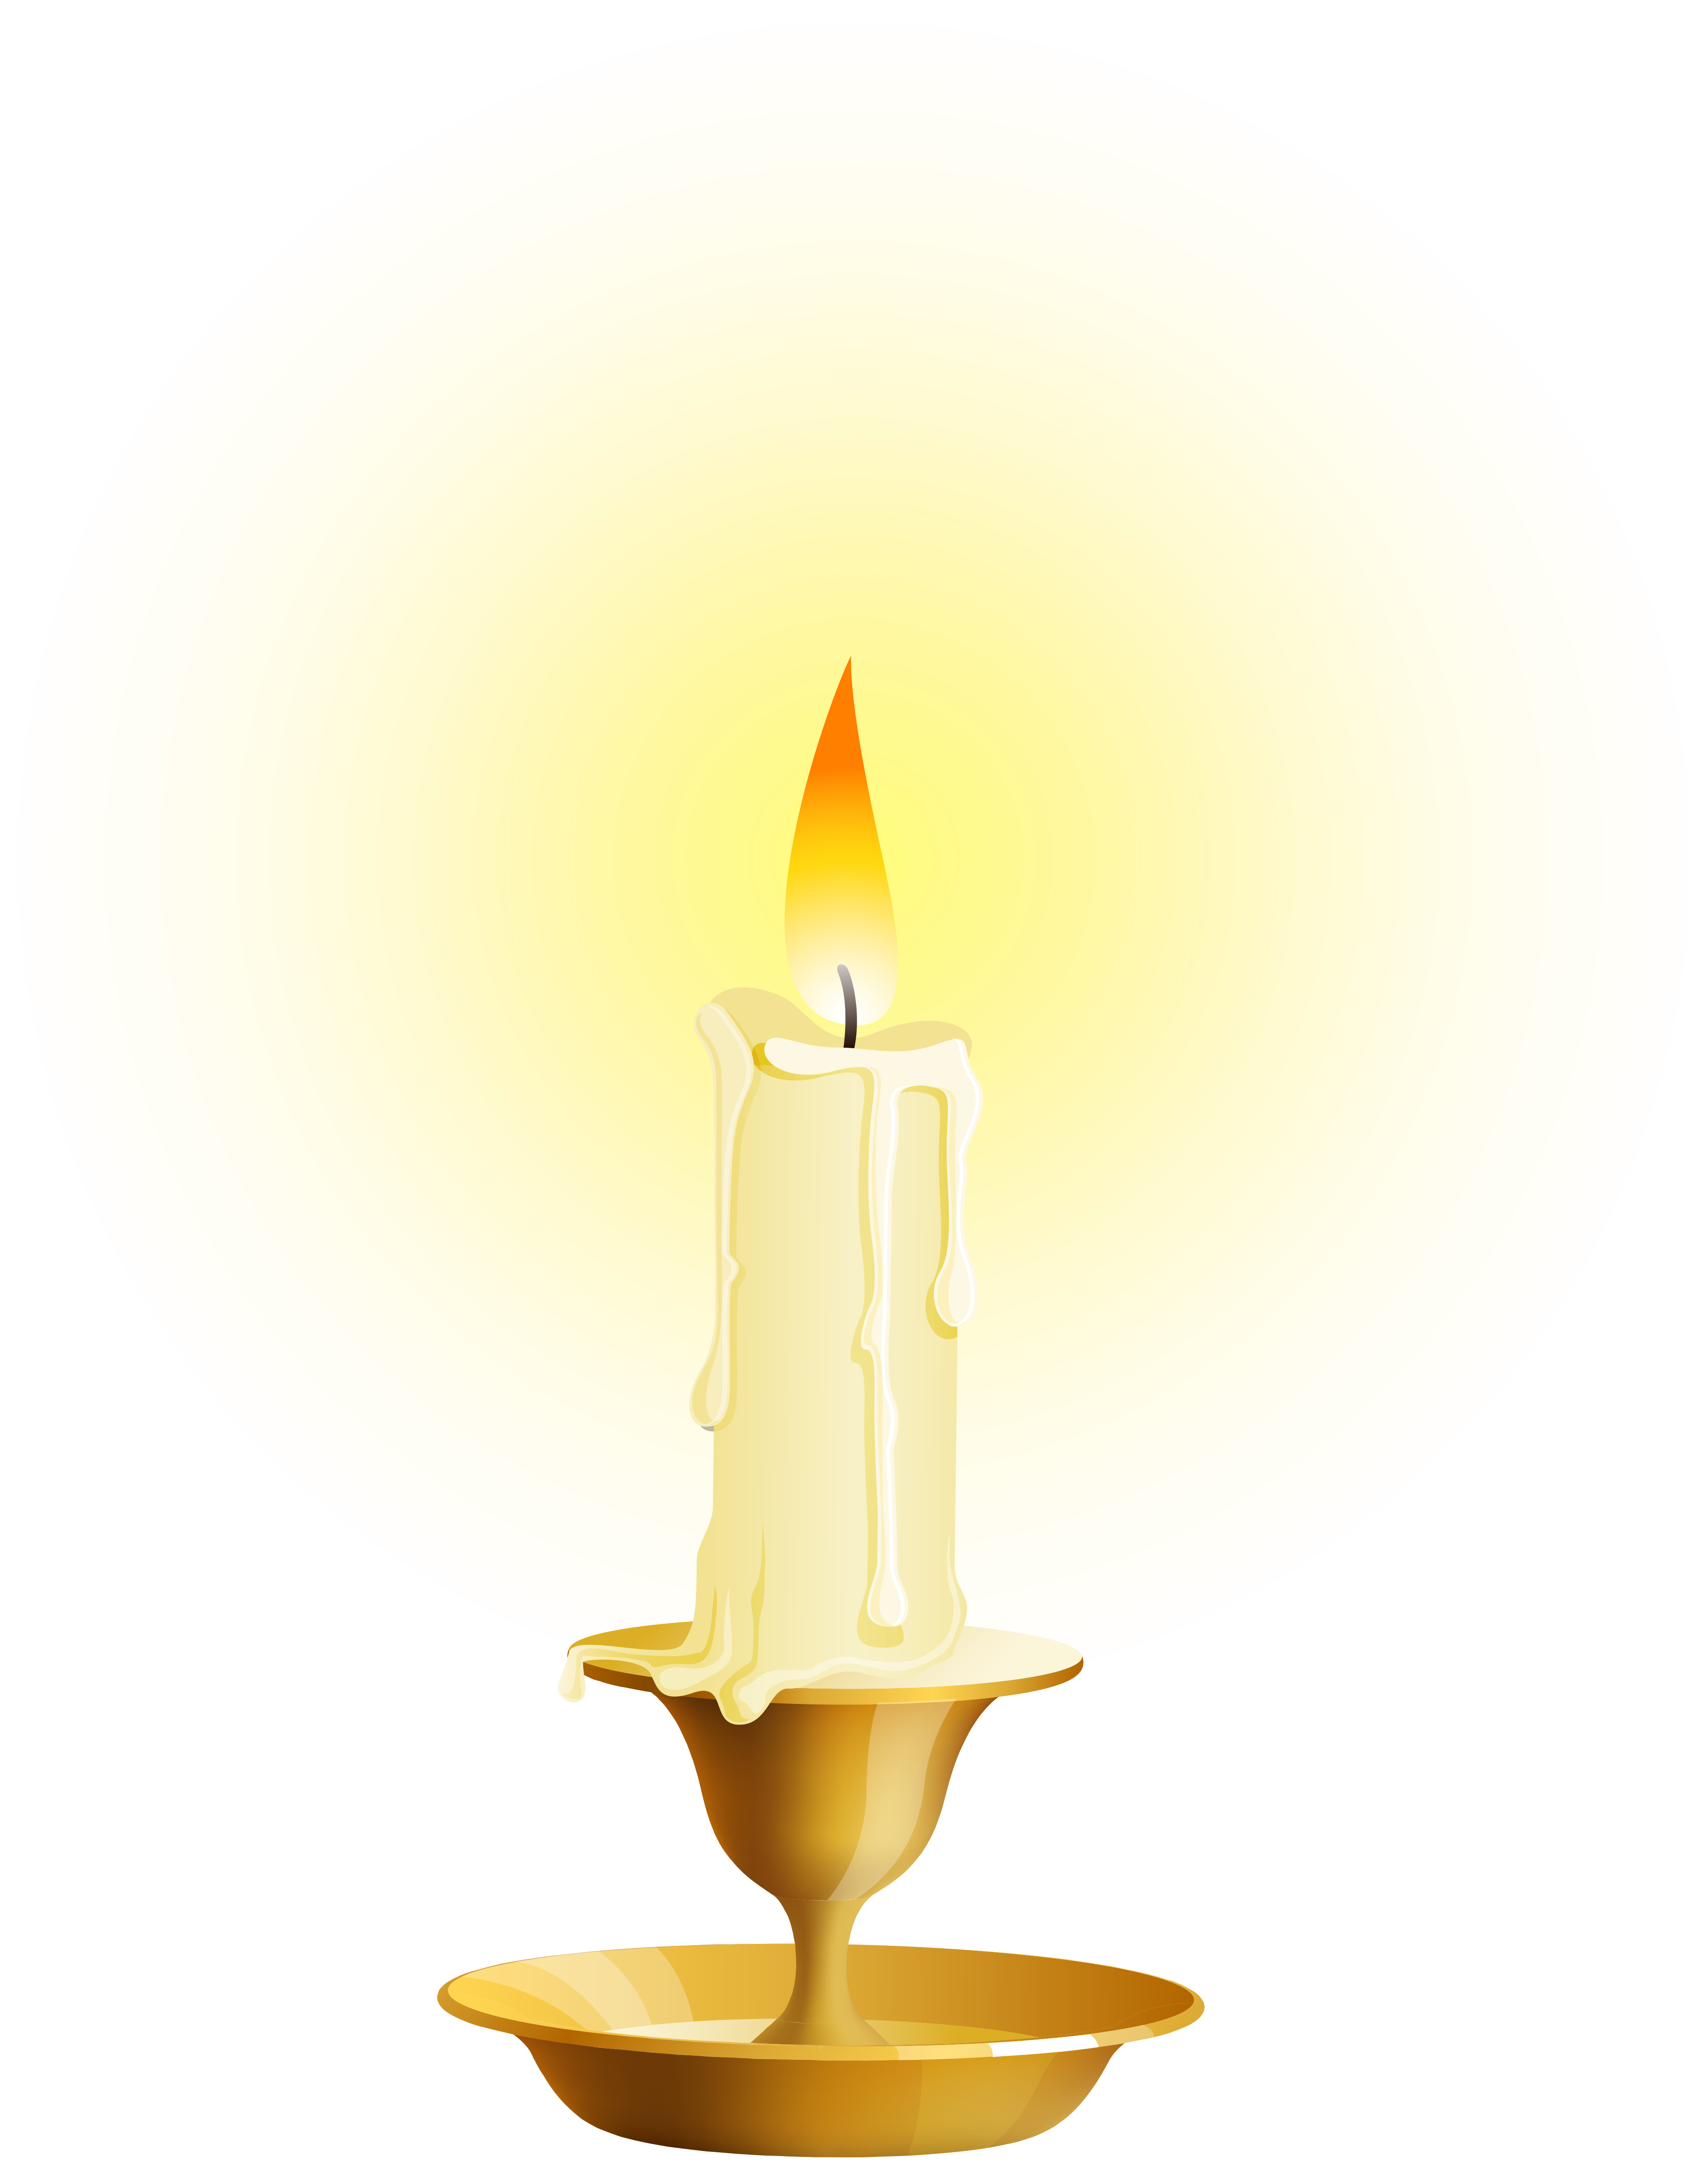 Clipart book candle. White png clip art